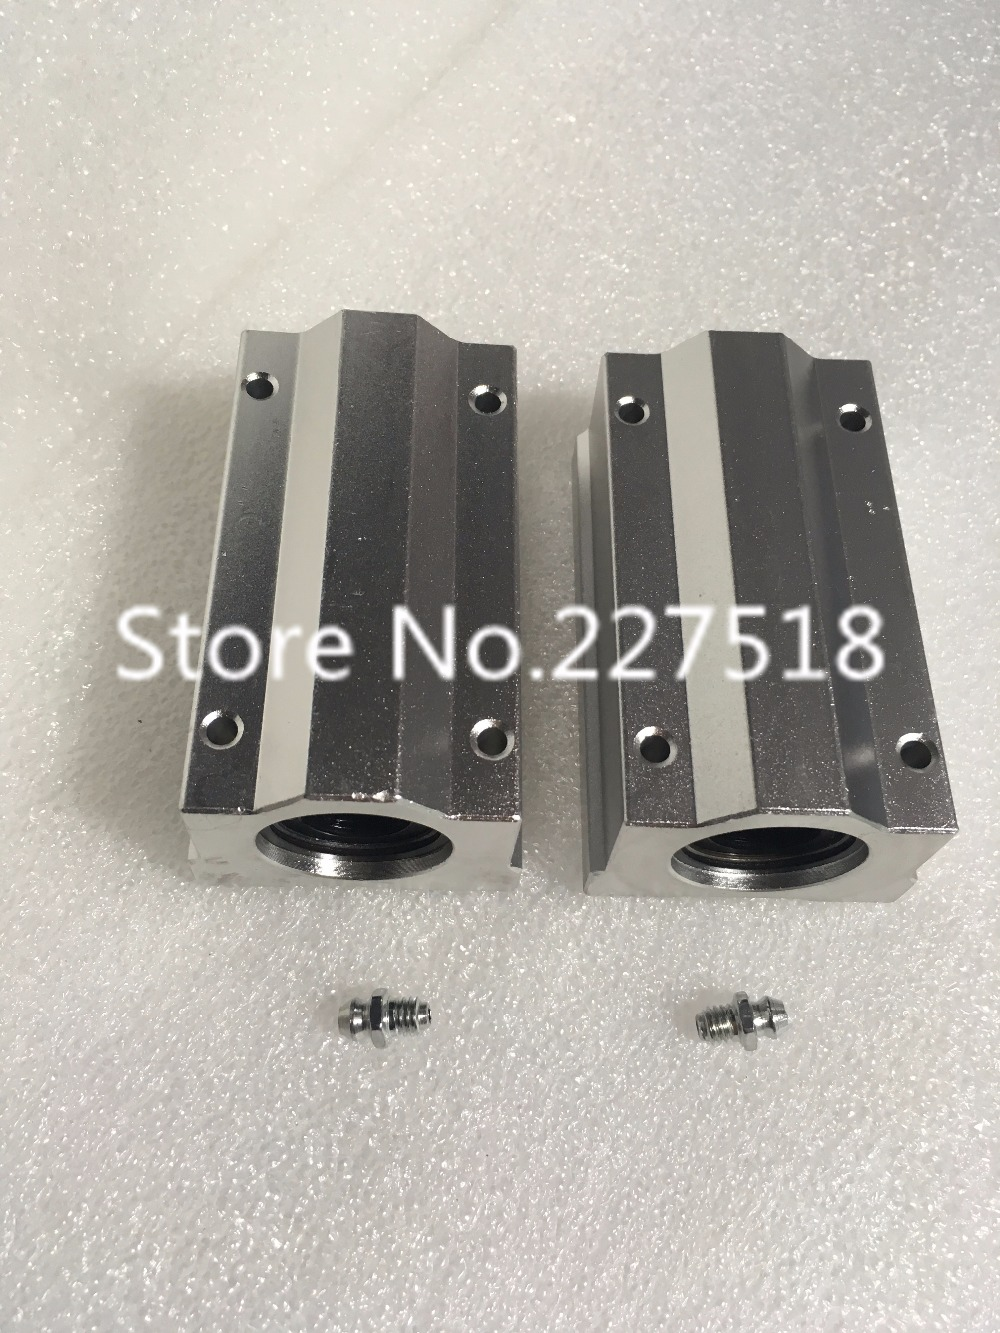 2pcs/lot SCS10LUU  linear guide bushing,linear ball bearing for 10mm shaft pillow block linear unit for CNC part 1pc scs50uu 50mm linear guide linear axis ball bearing block with lm50uu bush pillow block linear unit for cnc part